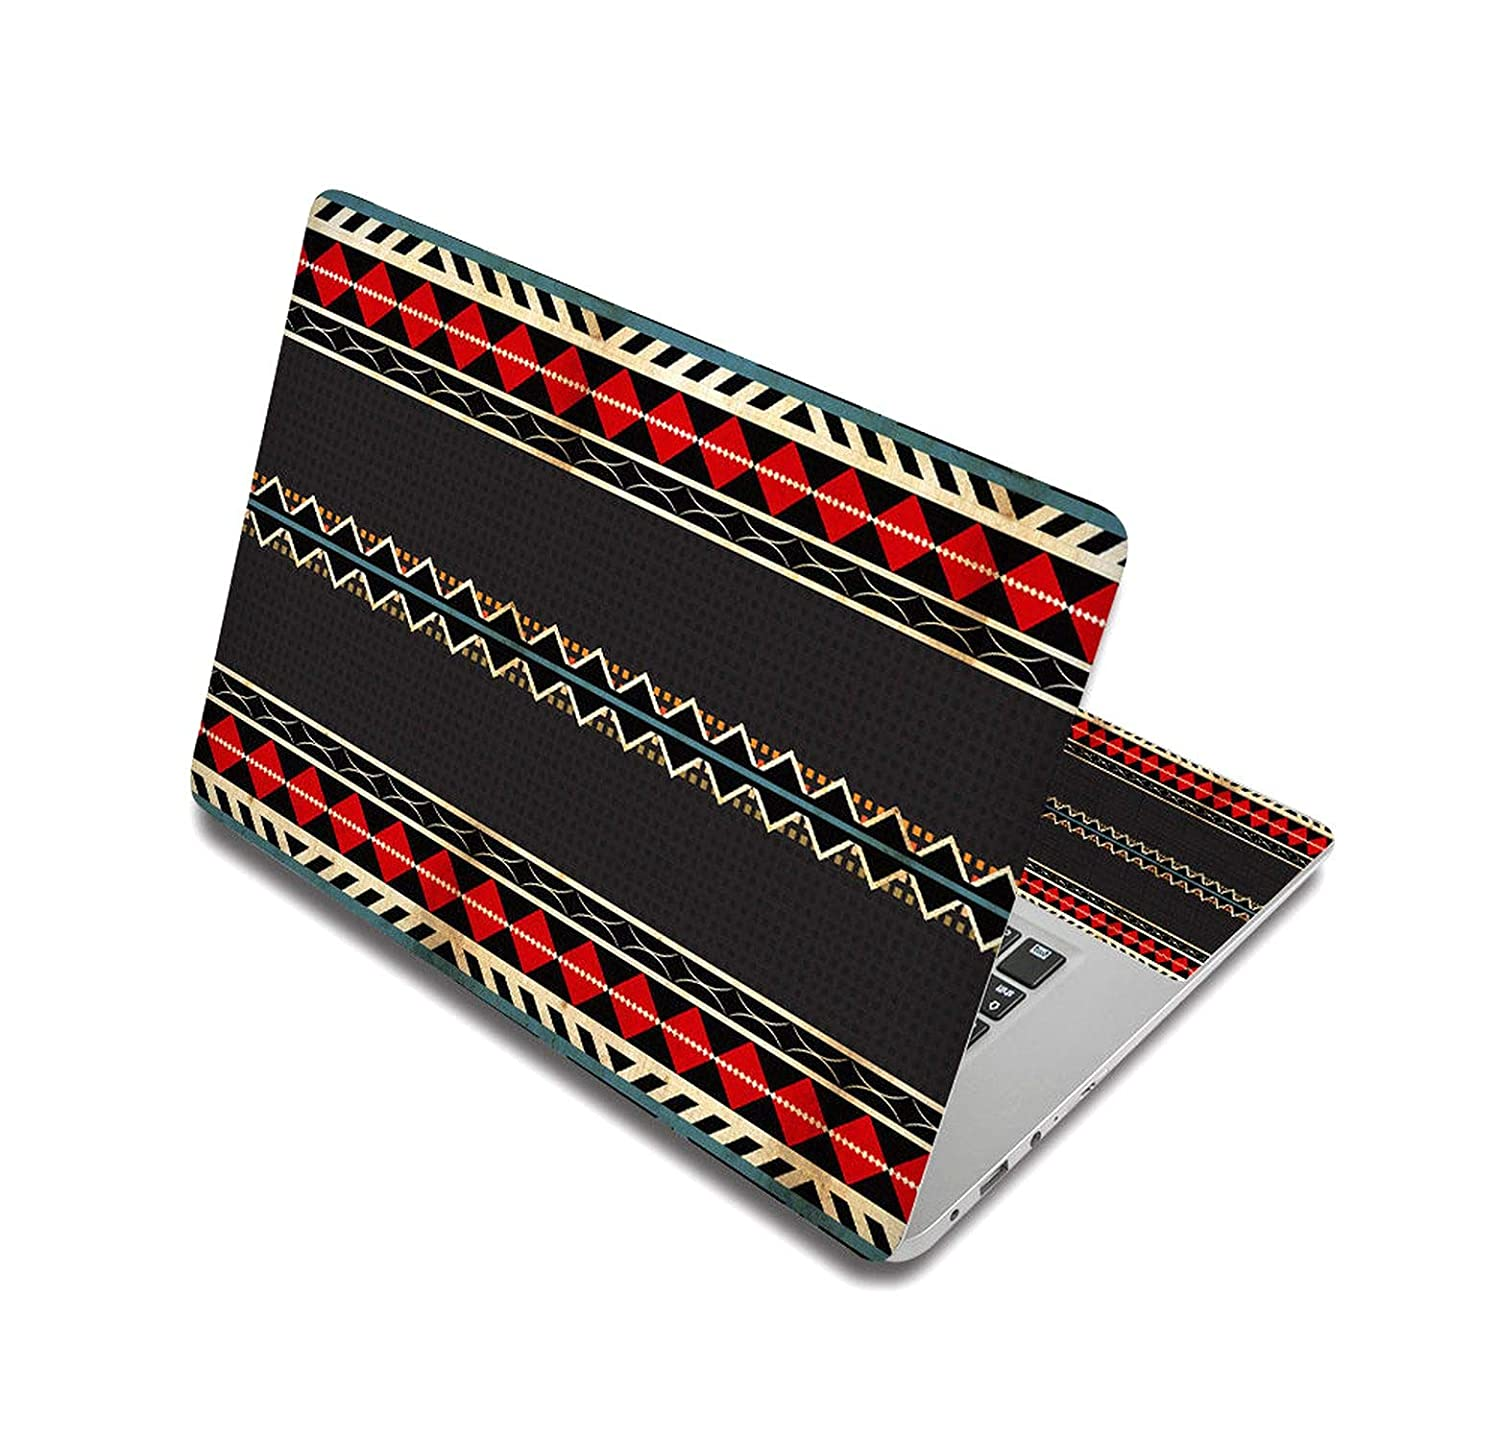 Stripe Style Notebook Stickers For Laptop Skin Universal Case Cover For Huawei Matebook/Acer/Asus/Lenovo,Custom Other Size,Laptop Skin 7